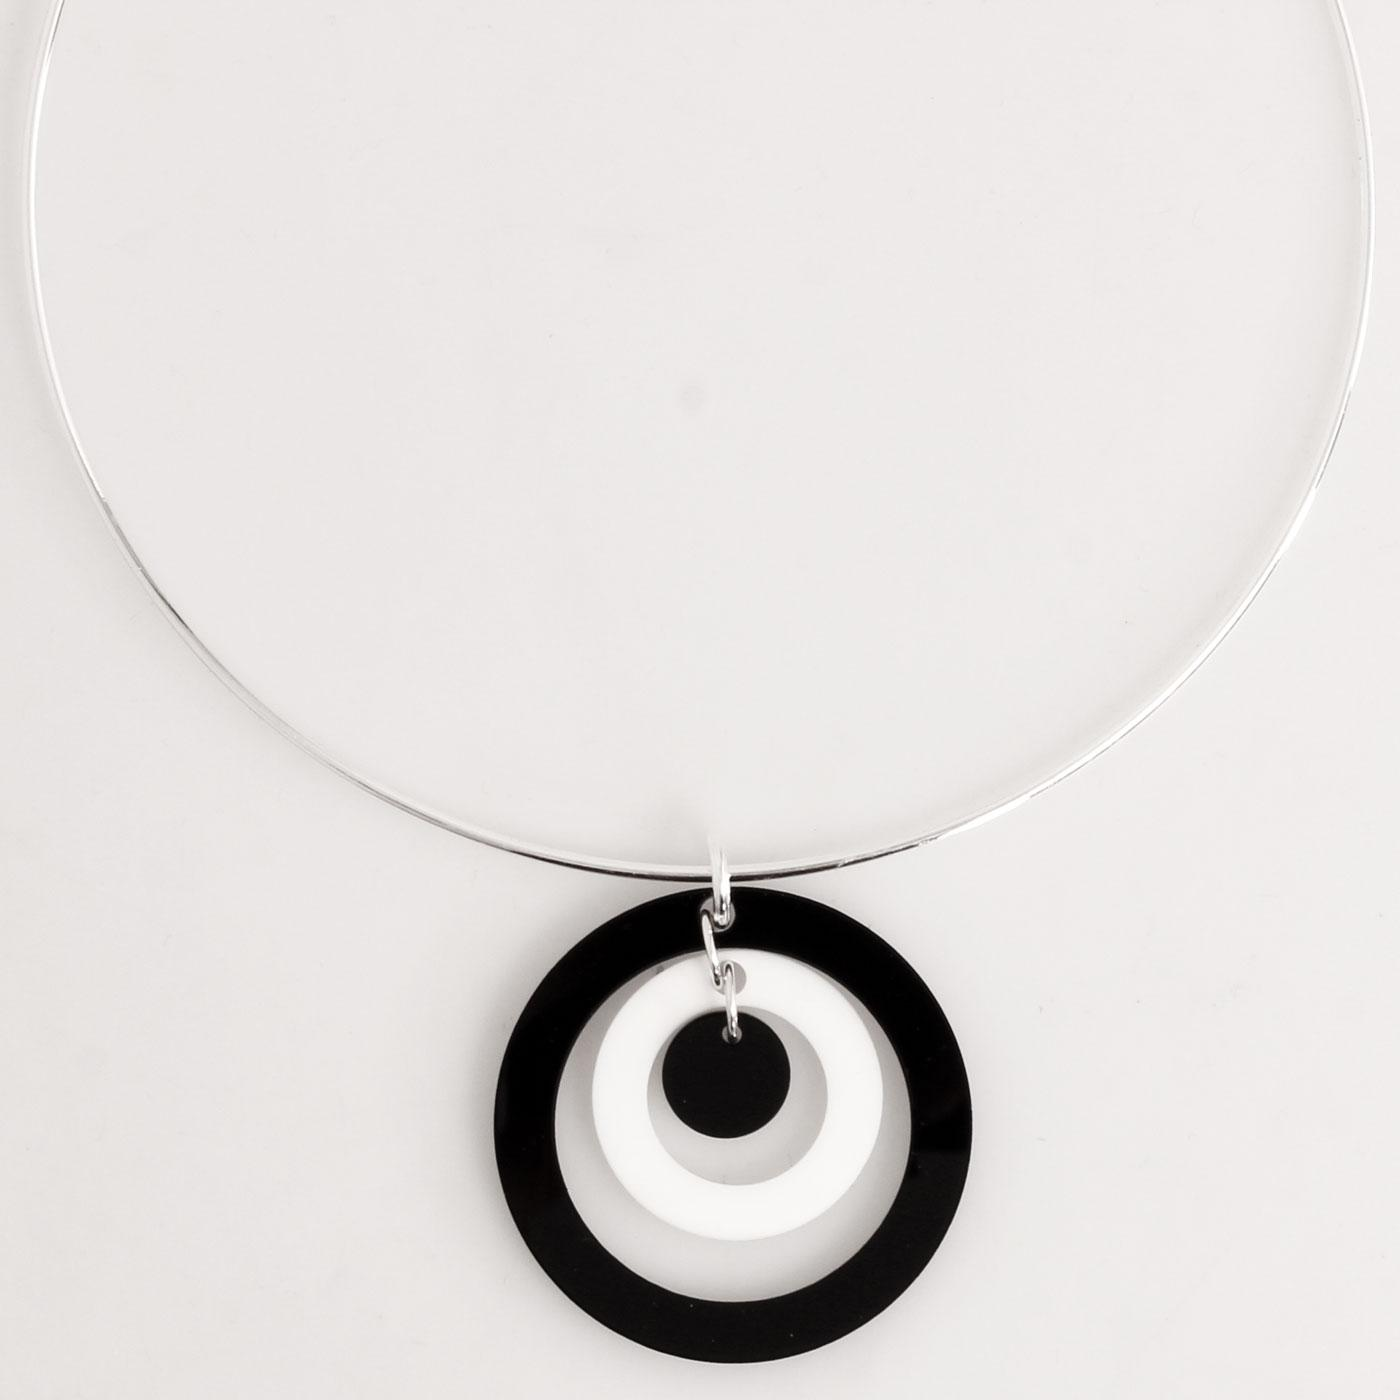 Ada Binks for Madcap England 60s Mod Concentric Circles Choker Necklace in Black